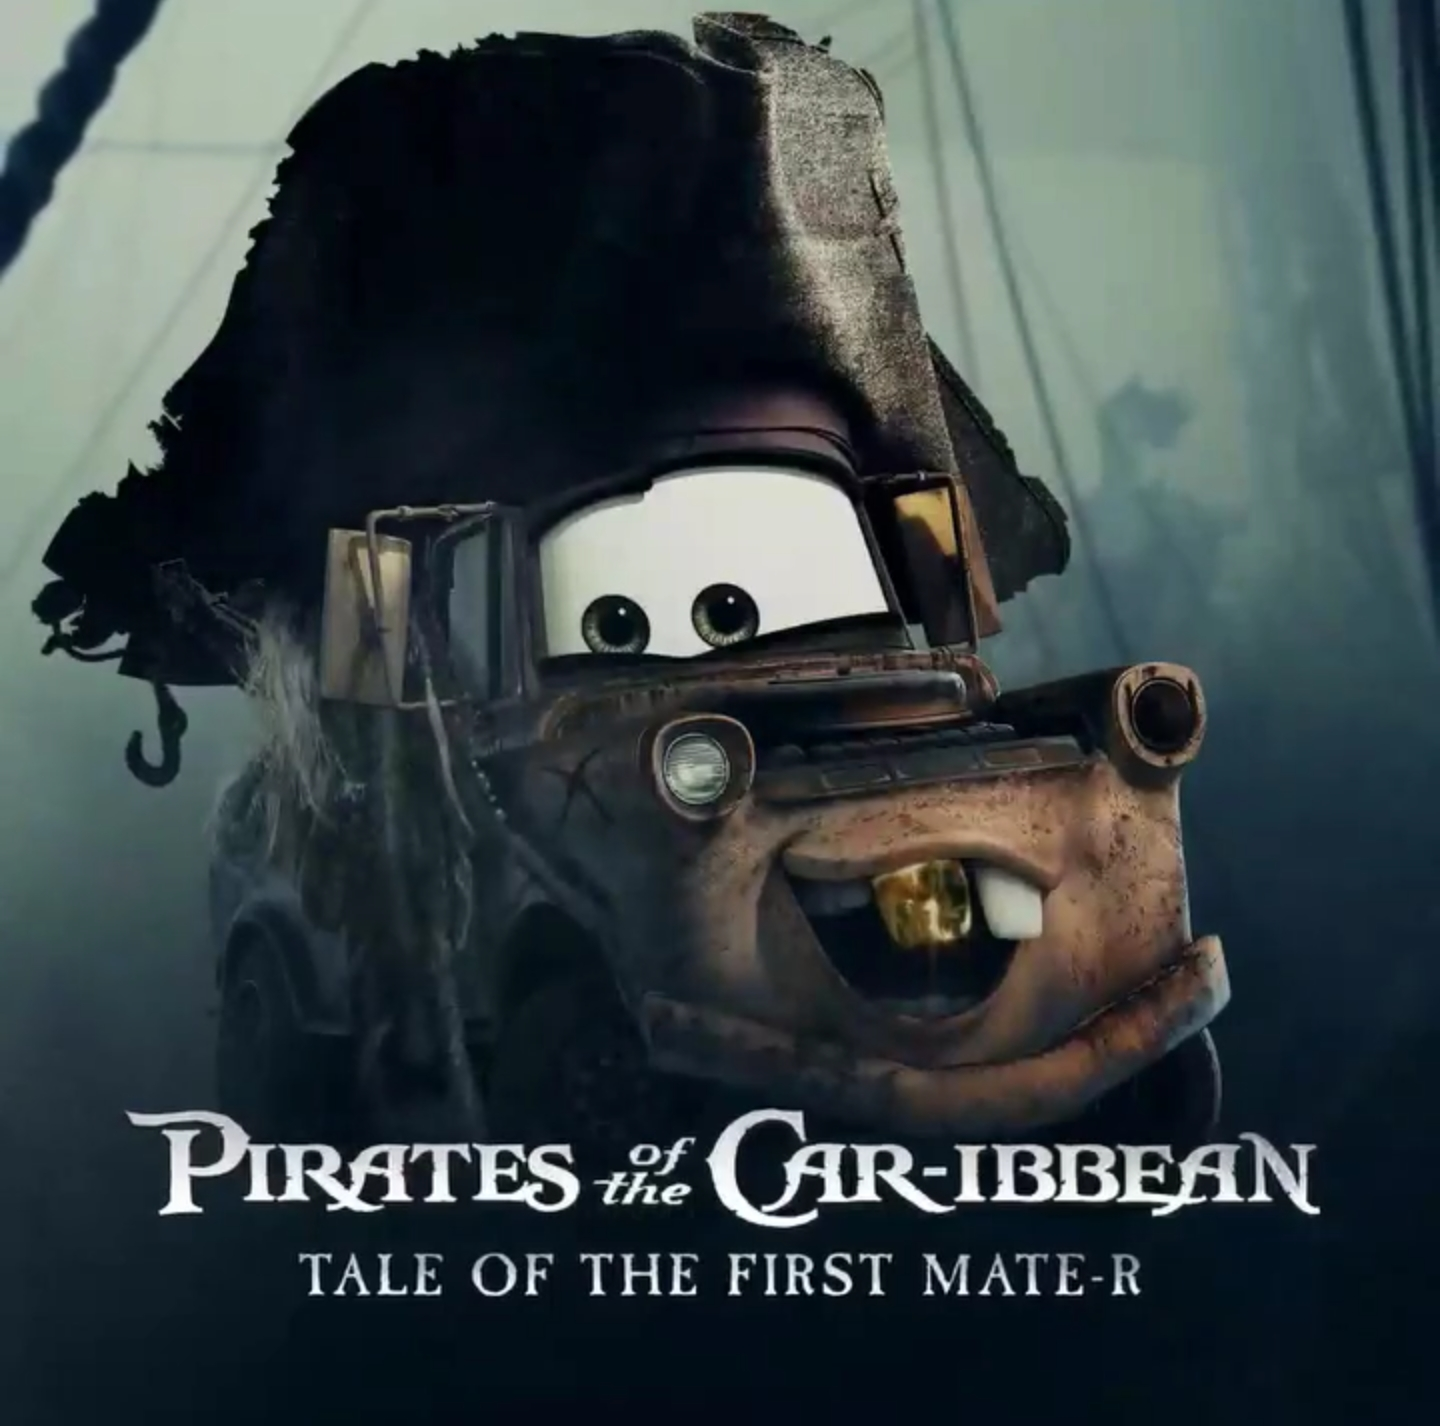 Pirates of the Car-ibbean: Tale of the First Mate-R